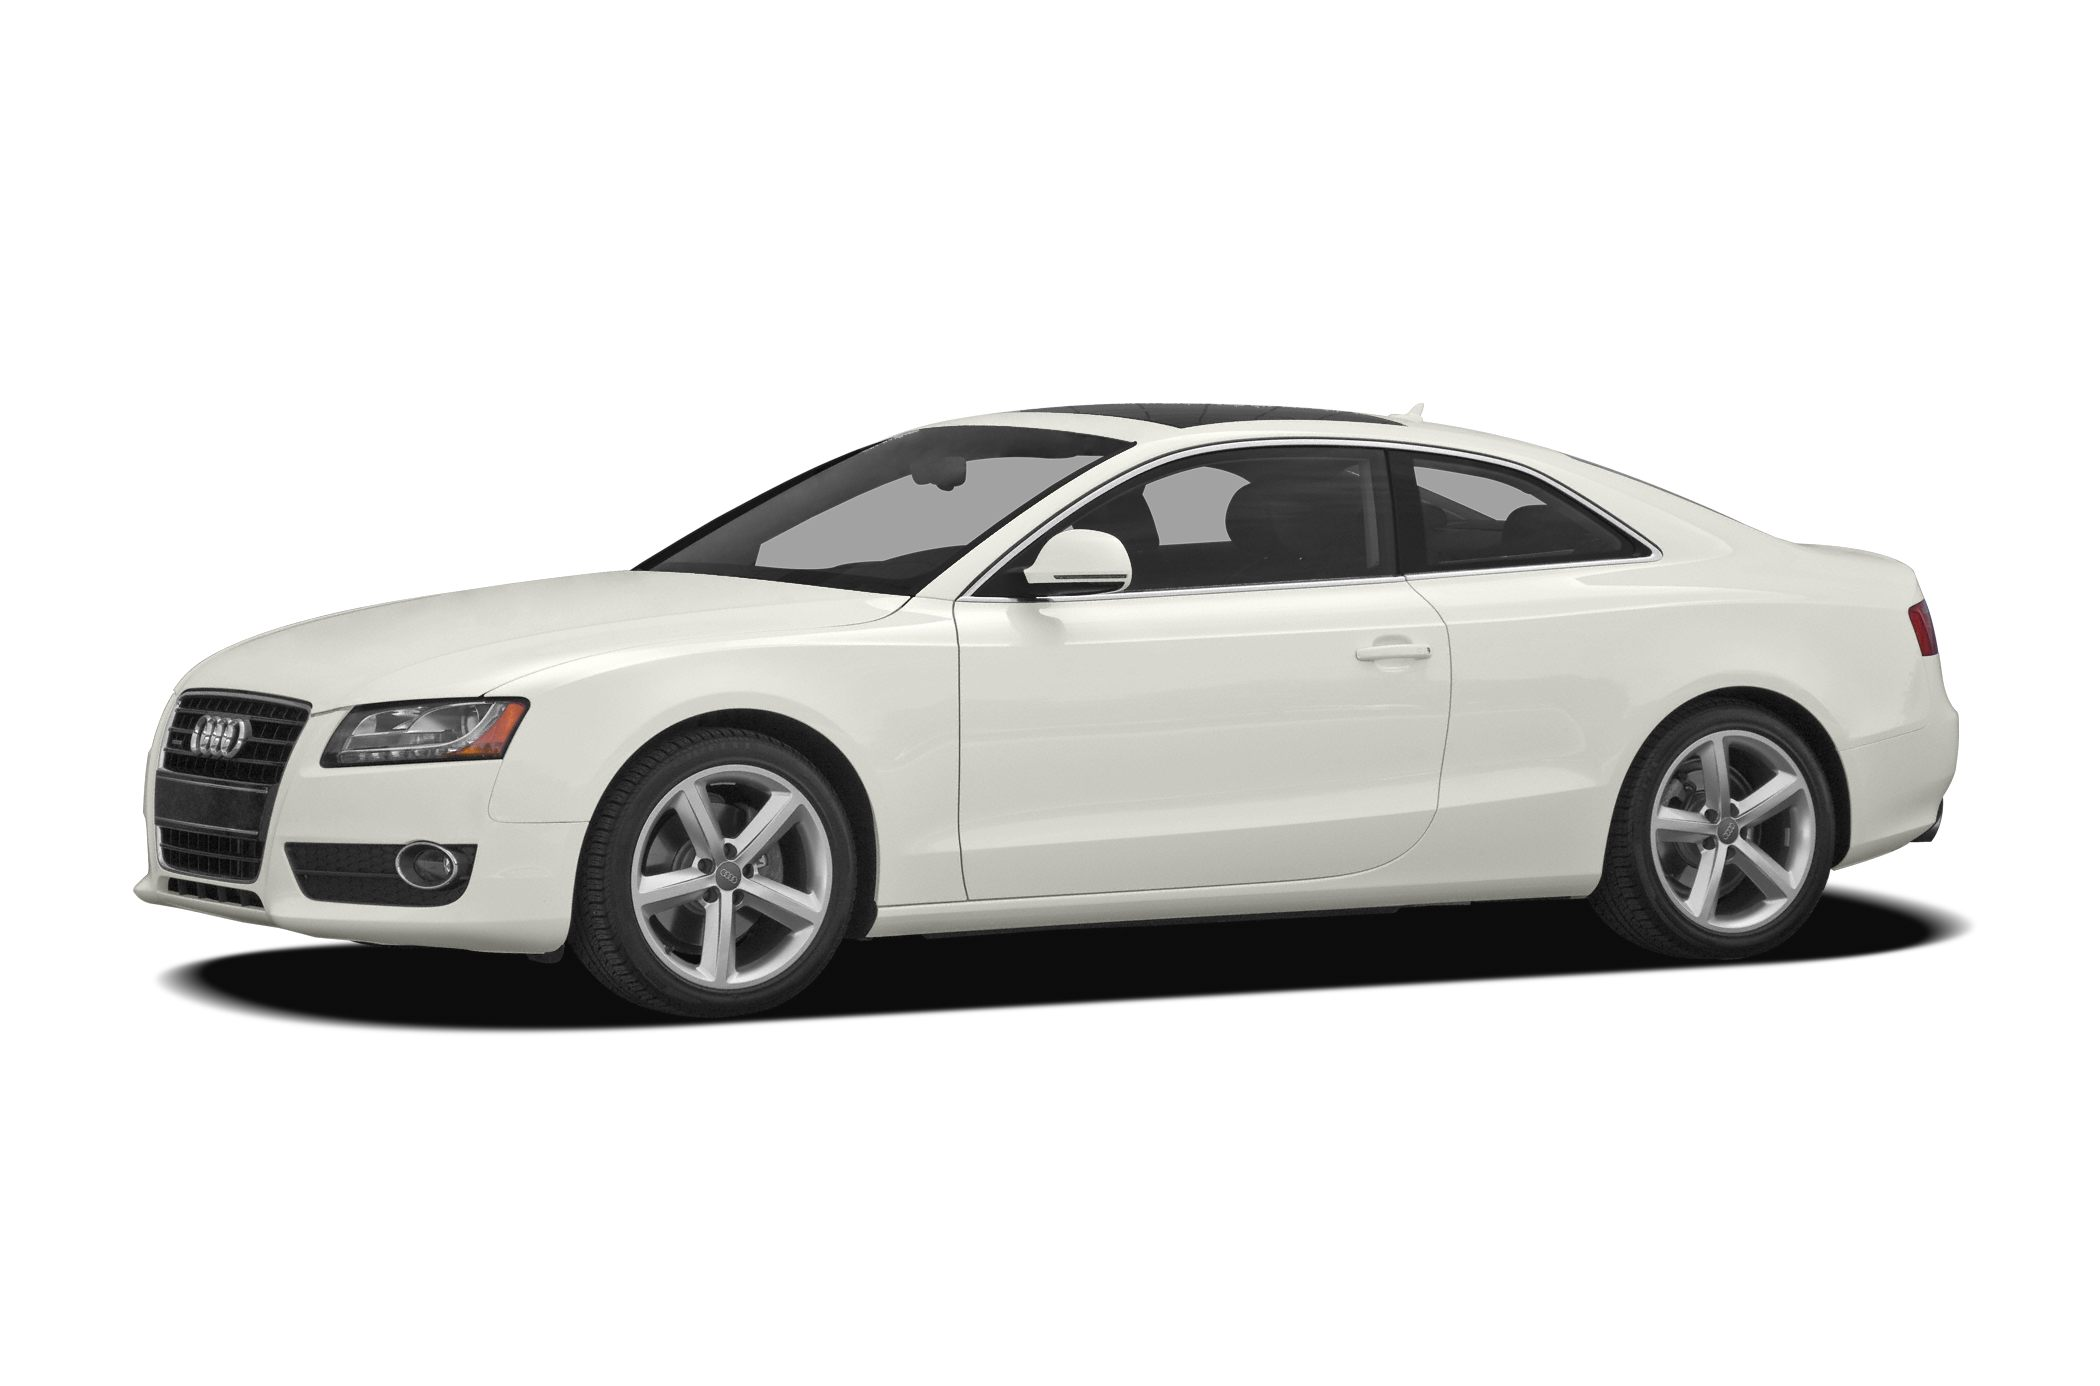 2009 Audi A5 3.2 Quattro Coupe for sale in Albuquerque for $0 with 38,942 miles